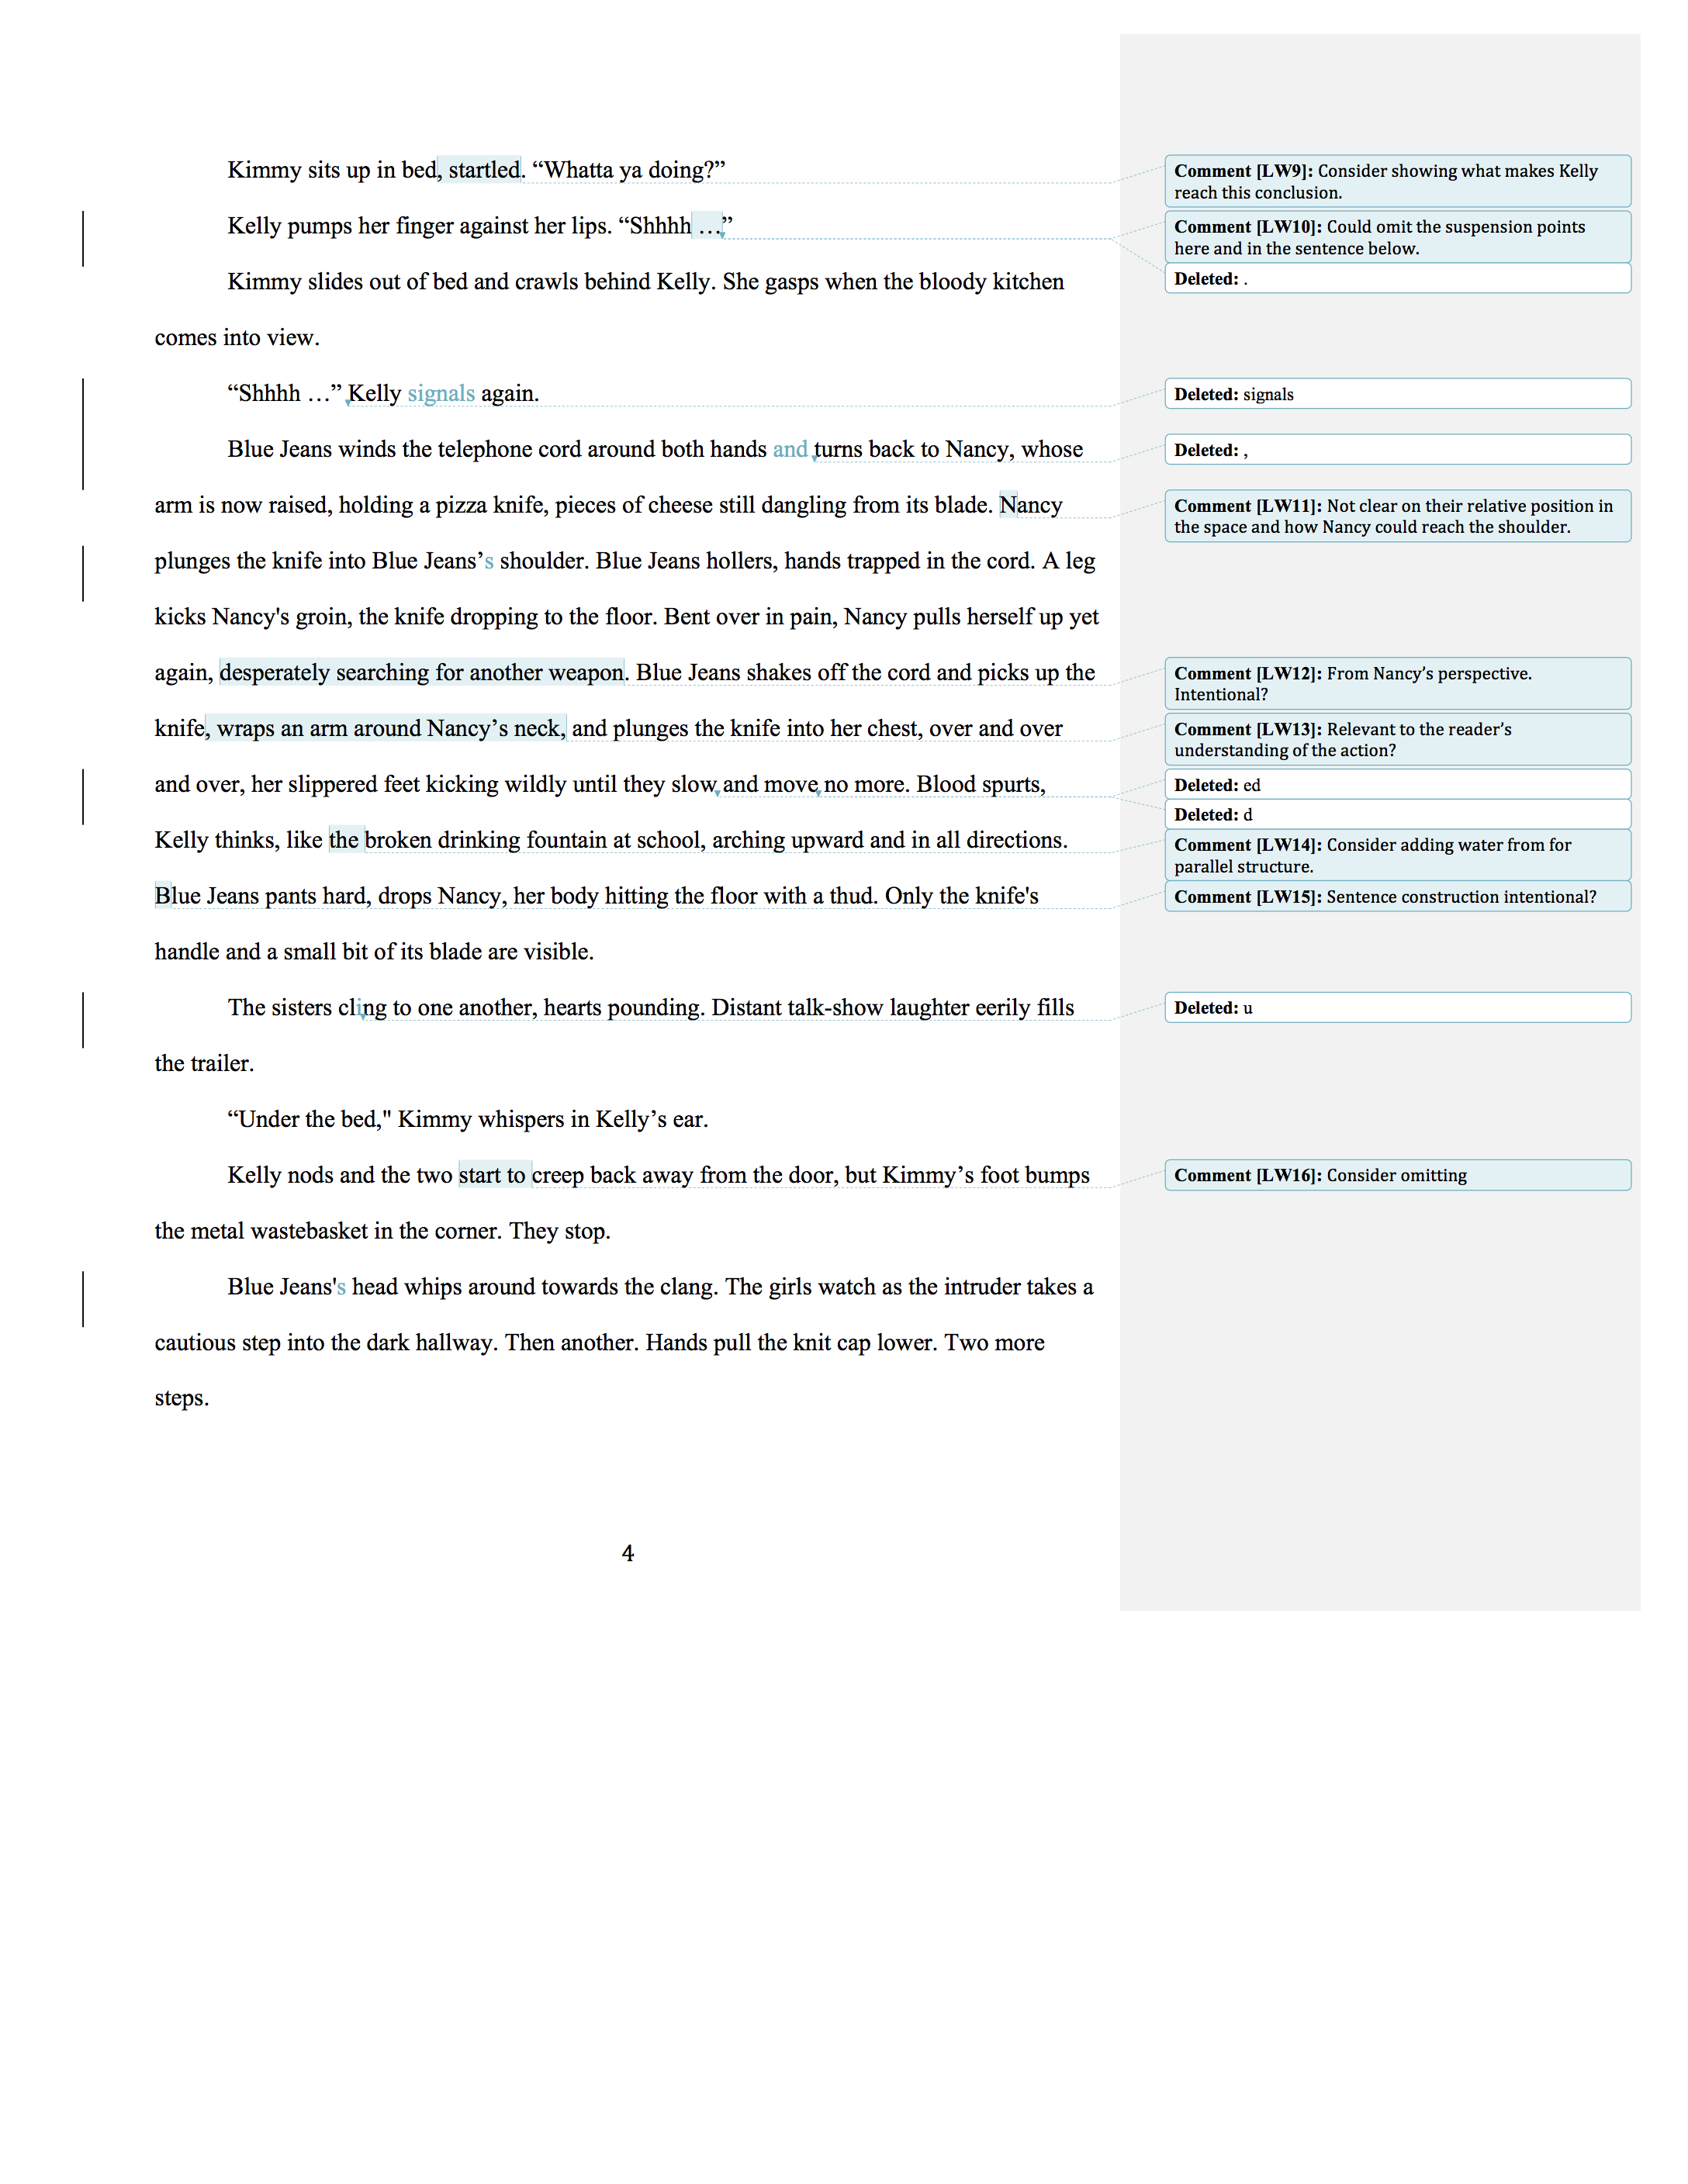 Ep.114-Inciting Incidents-p4.png